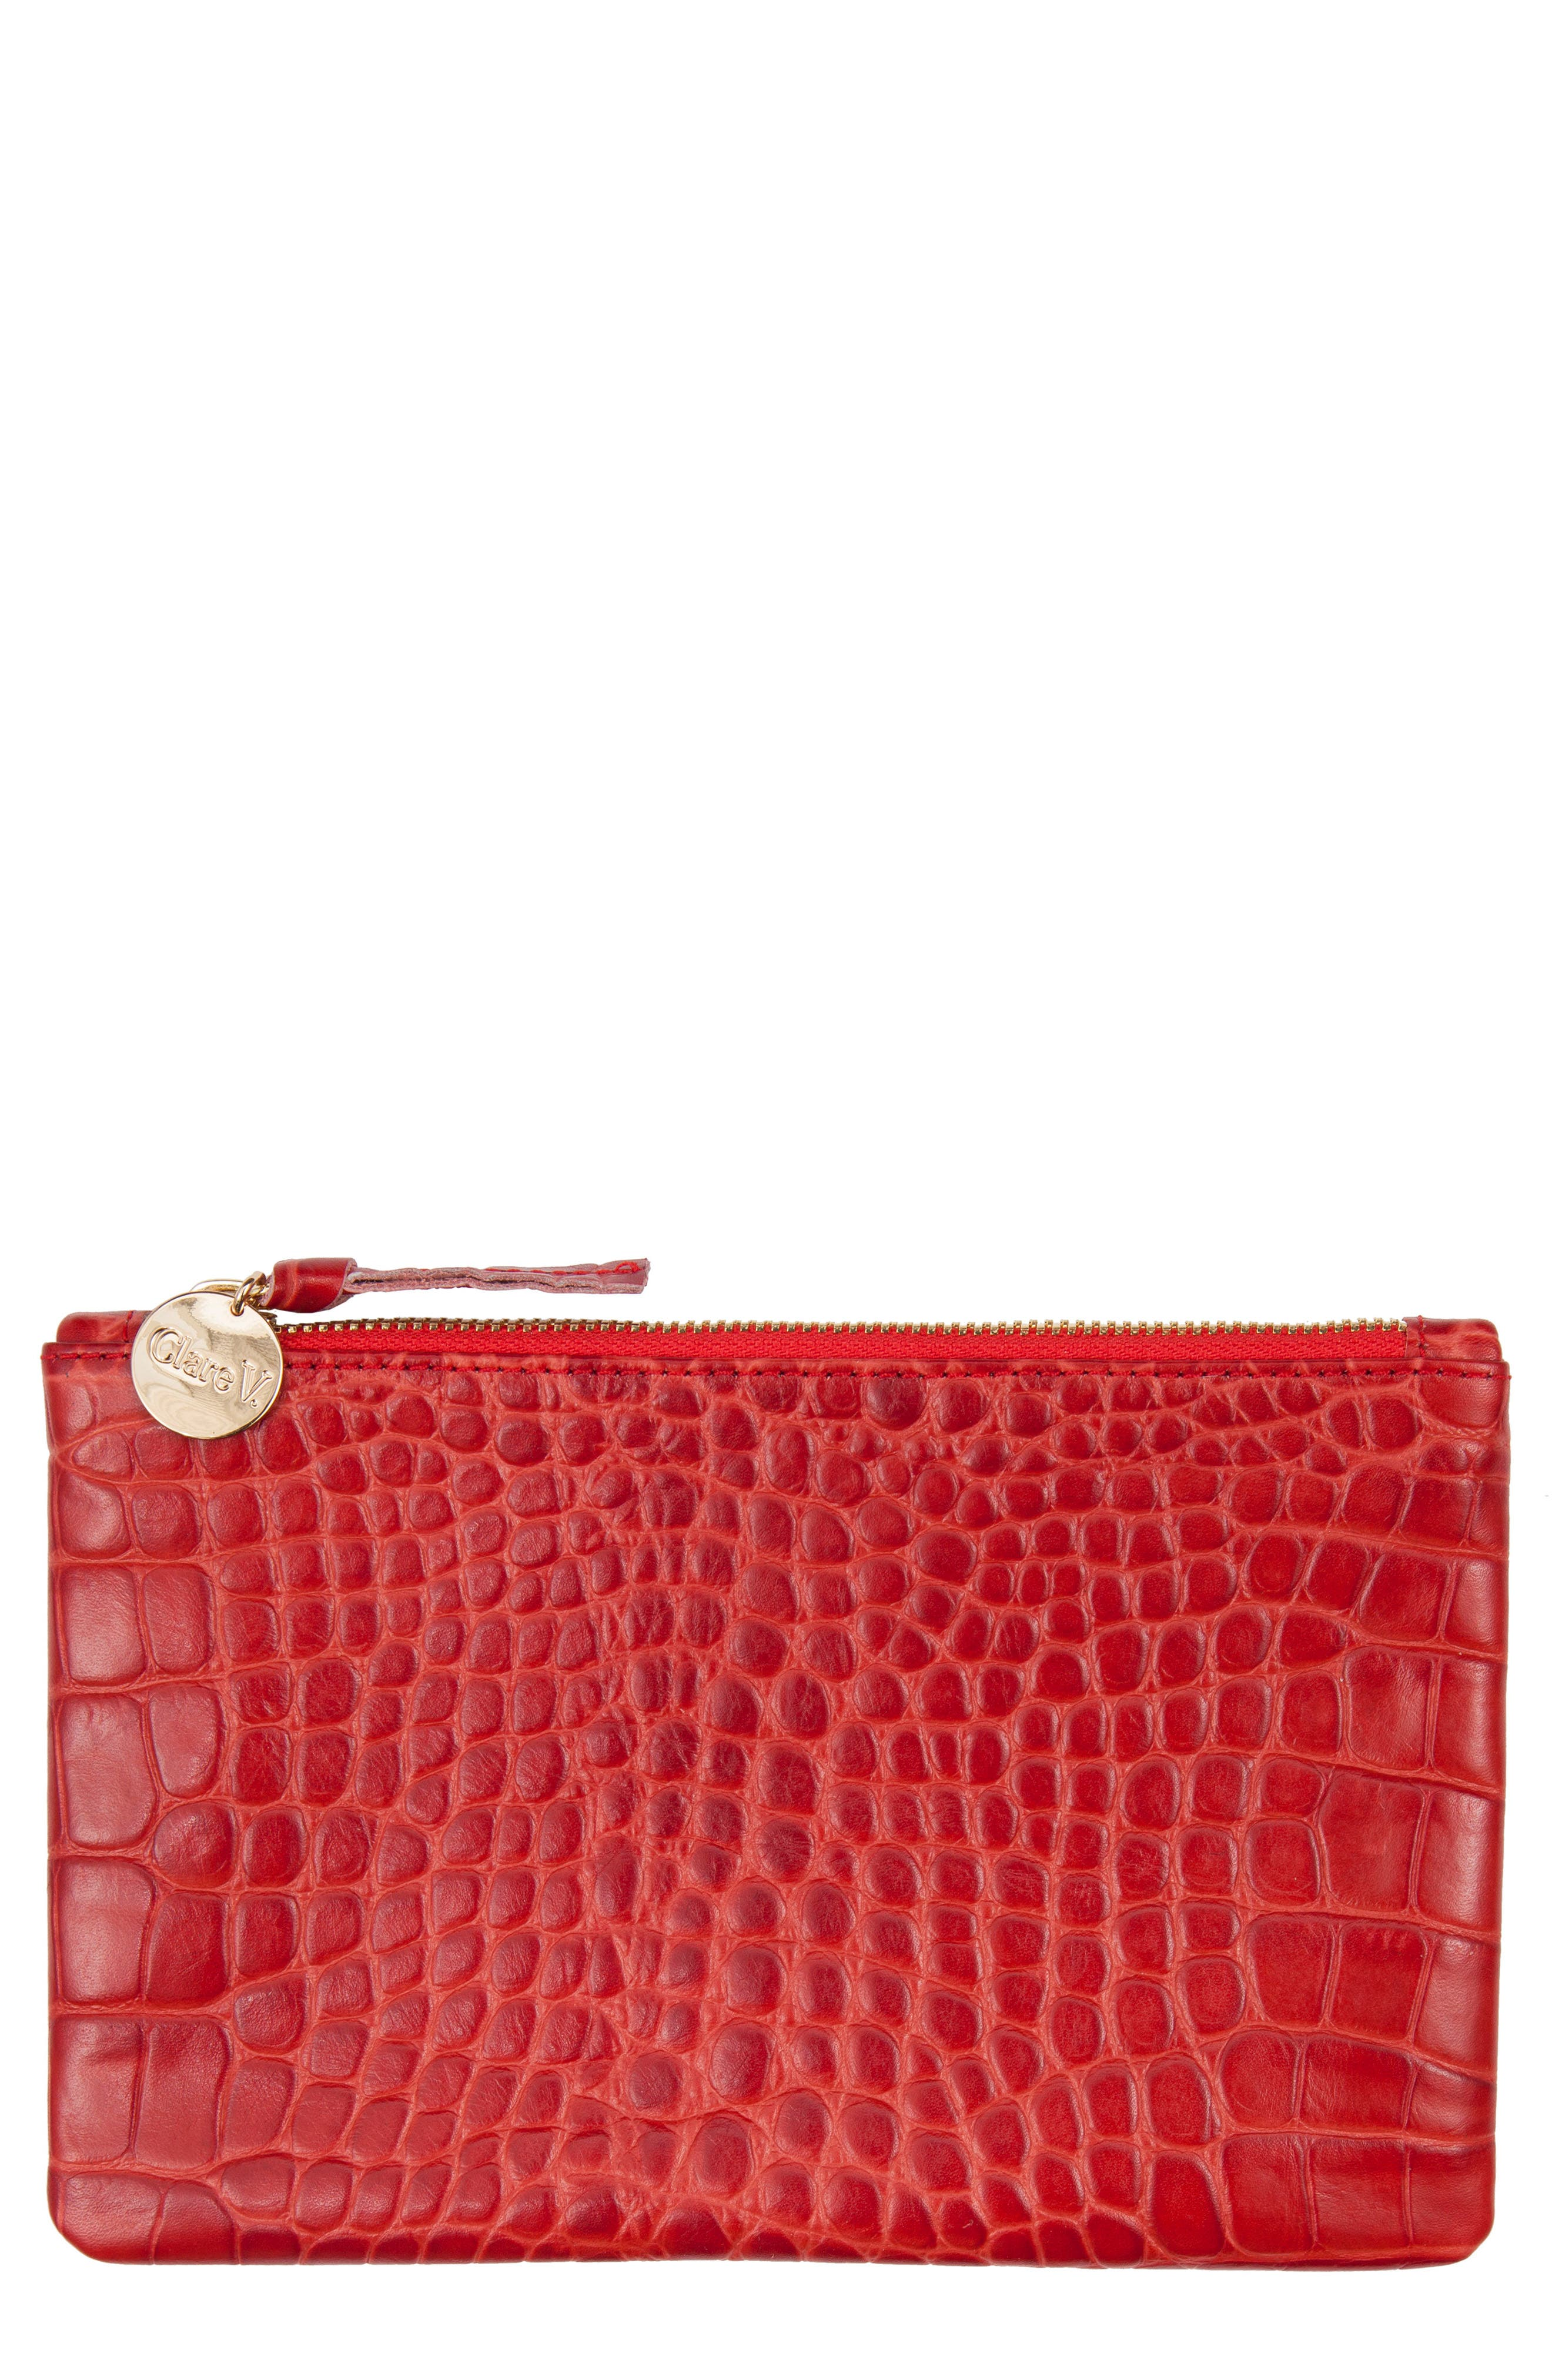 Croc Embossed Leather Wallet Clutch,                         Main,                         color, Red Croco